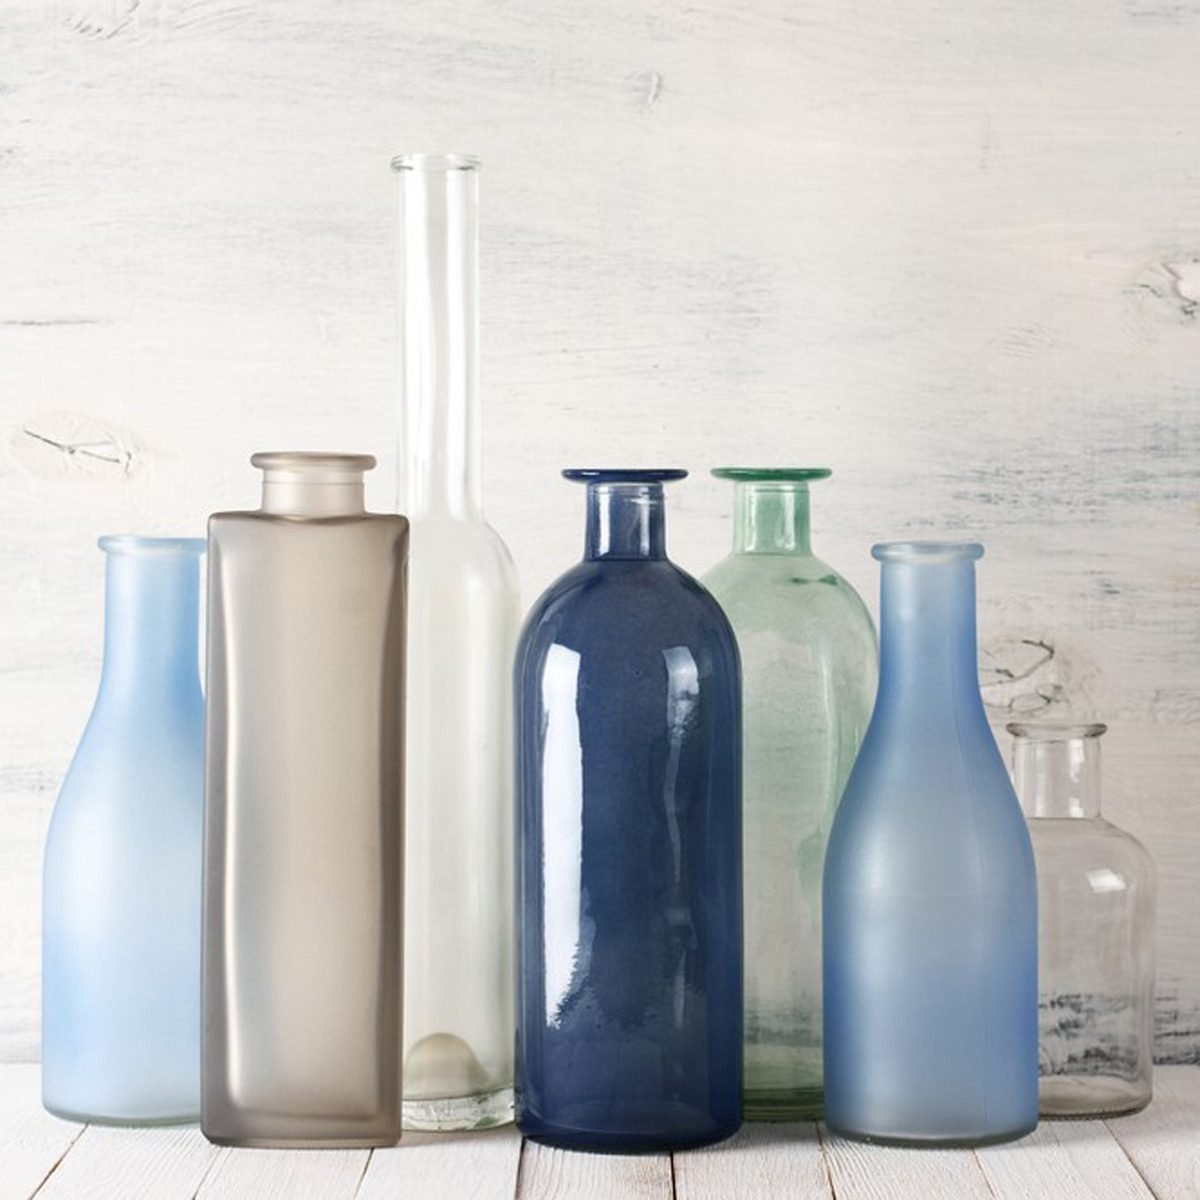 Mix-and-Match Glassware